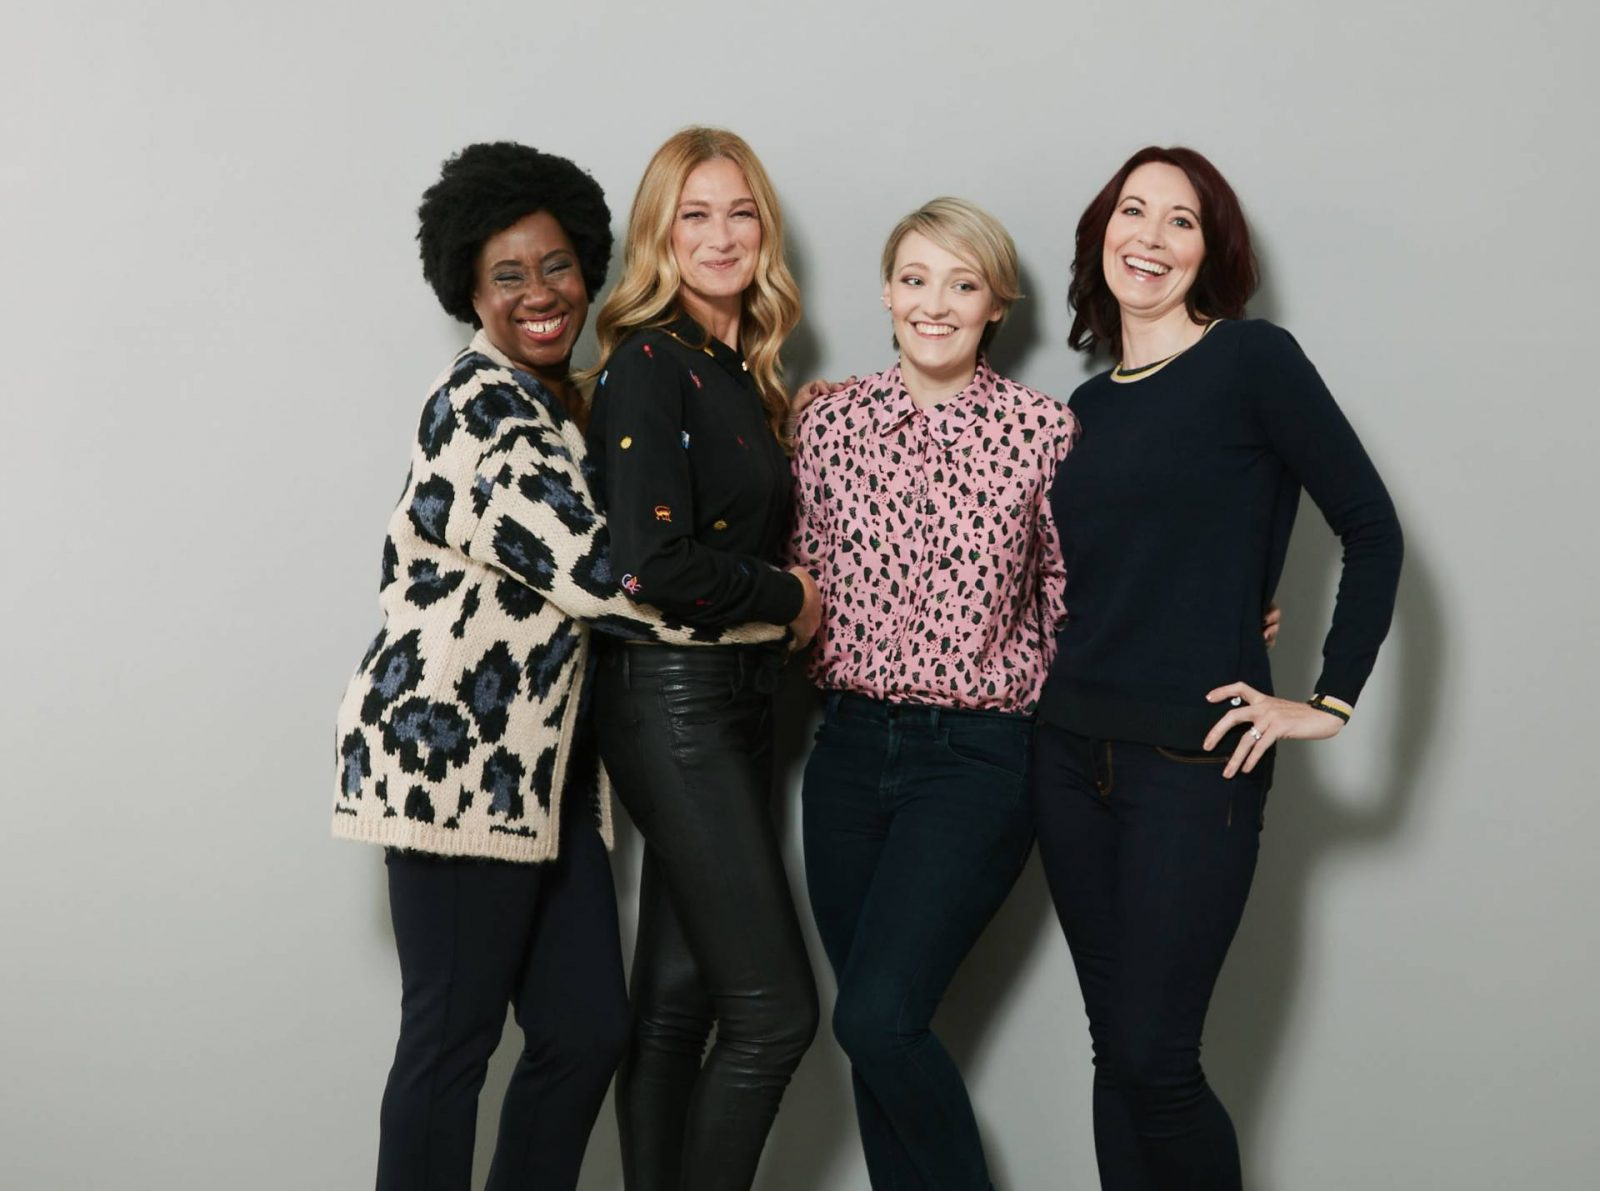 Modelling for the-Bias-Cut.com, group photo